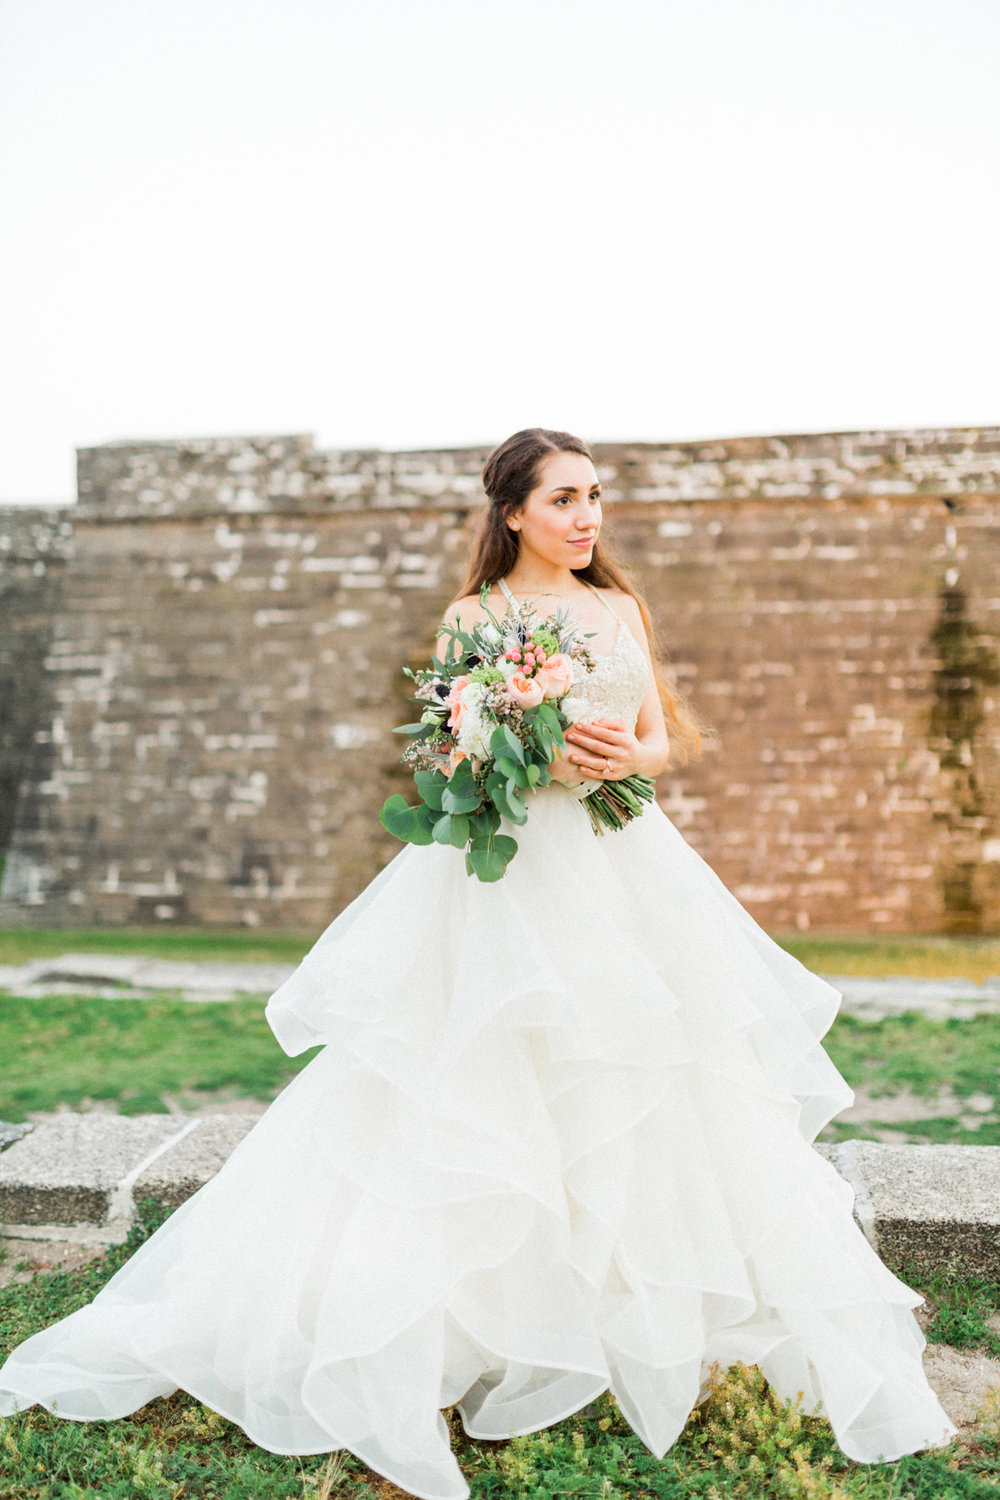 St. augustine, castillo de san marcos styled wedding bridal photo, bride with flowers